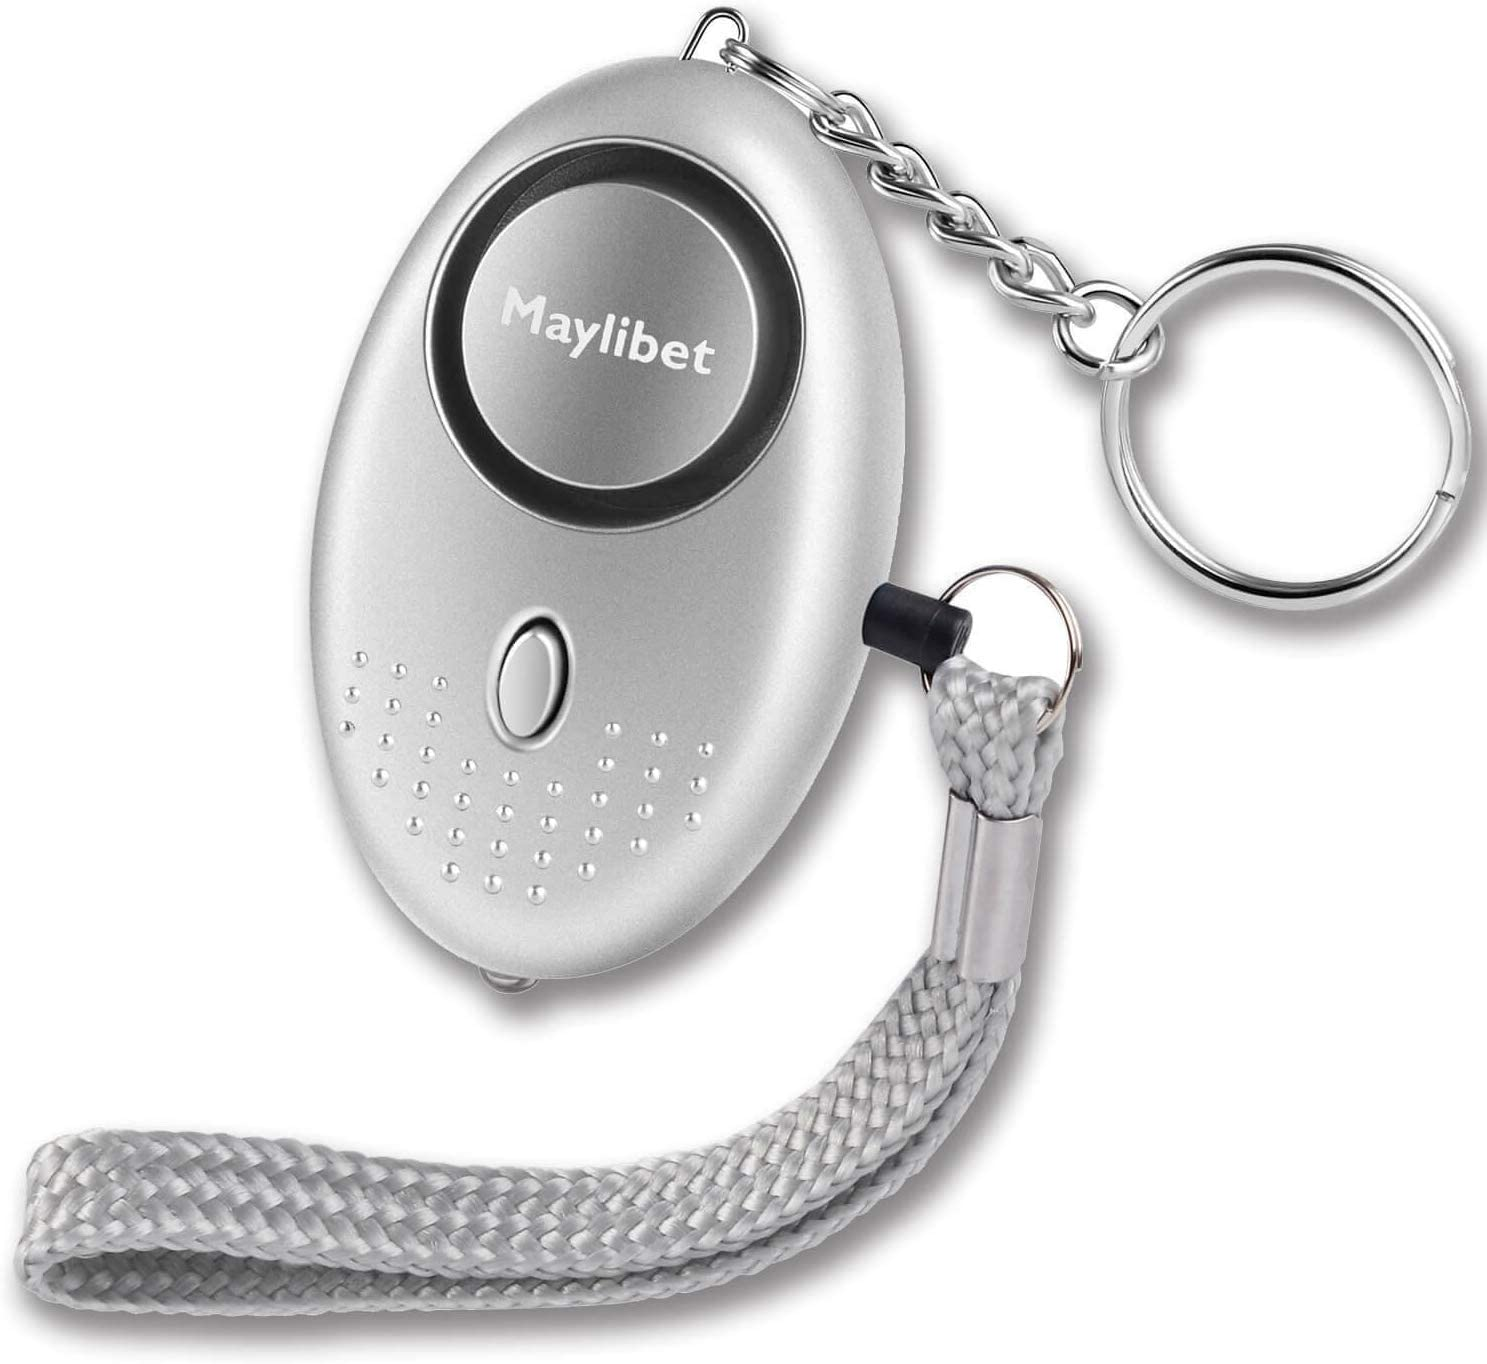 SafeSound Personal Alarm 140dB with Flashlight Safe and Sound Personal Alarms for Women Elderly Kids Self Defense Emergency Siren Song Alarm Keychain 61FlV5qEQpL